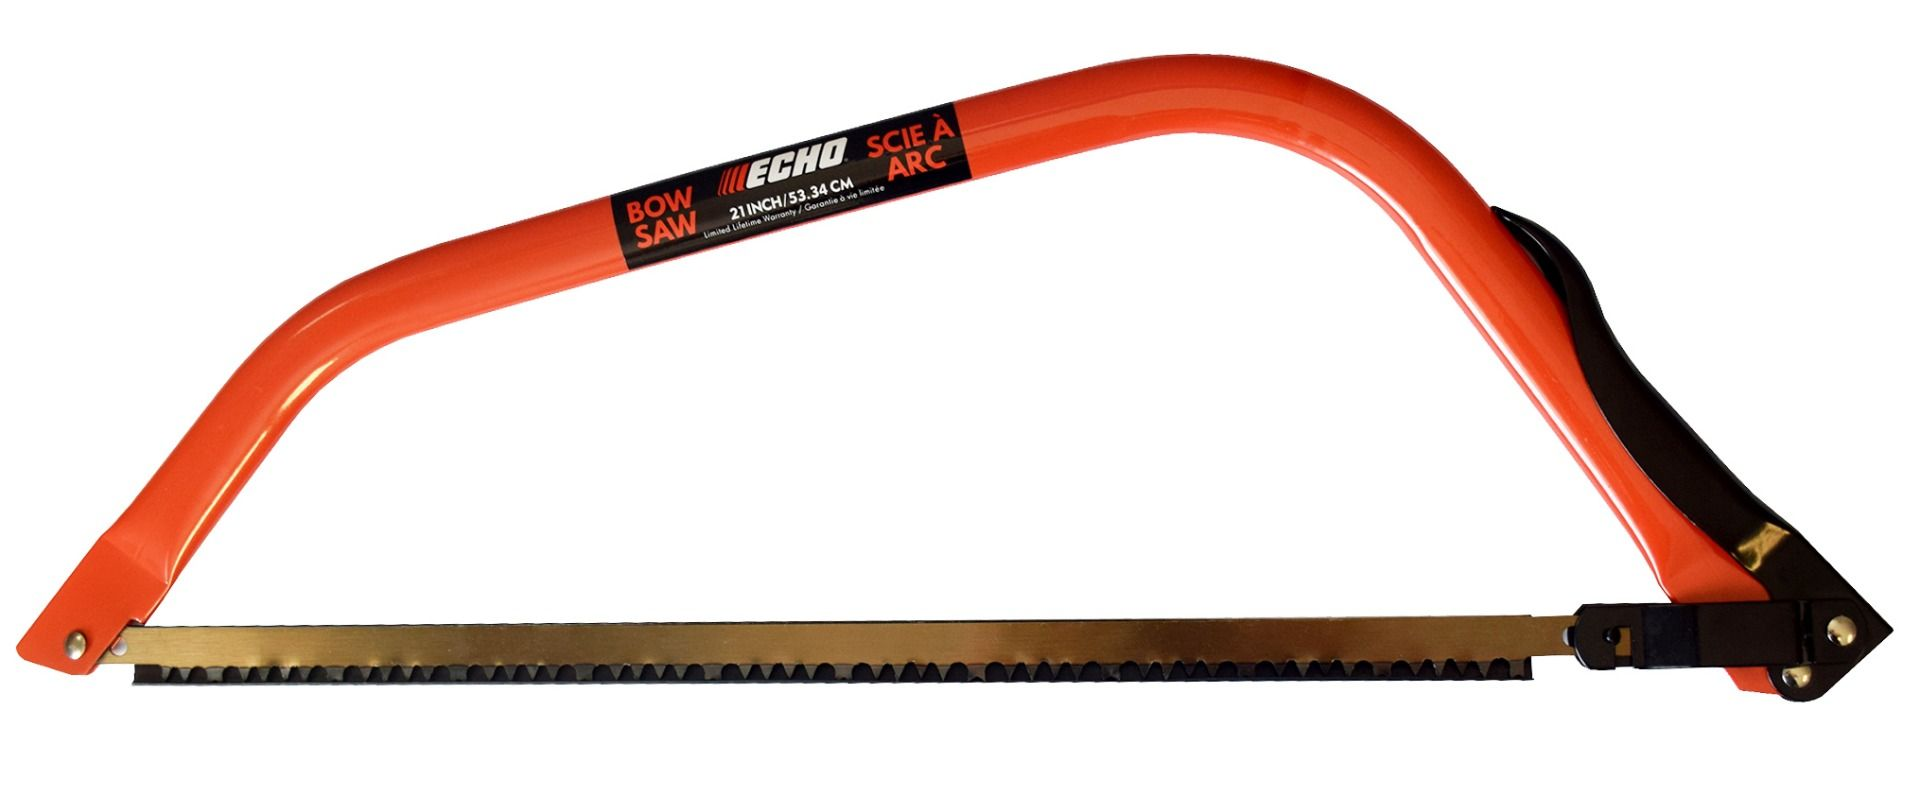 "ECHO 21"" Bow Saw Hand Tool"